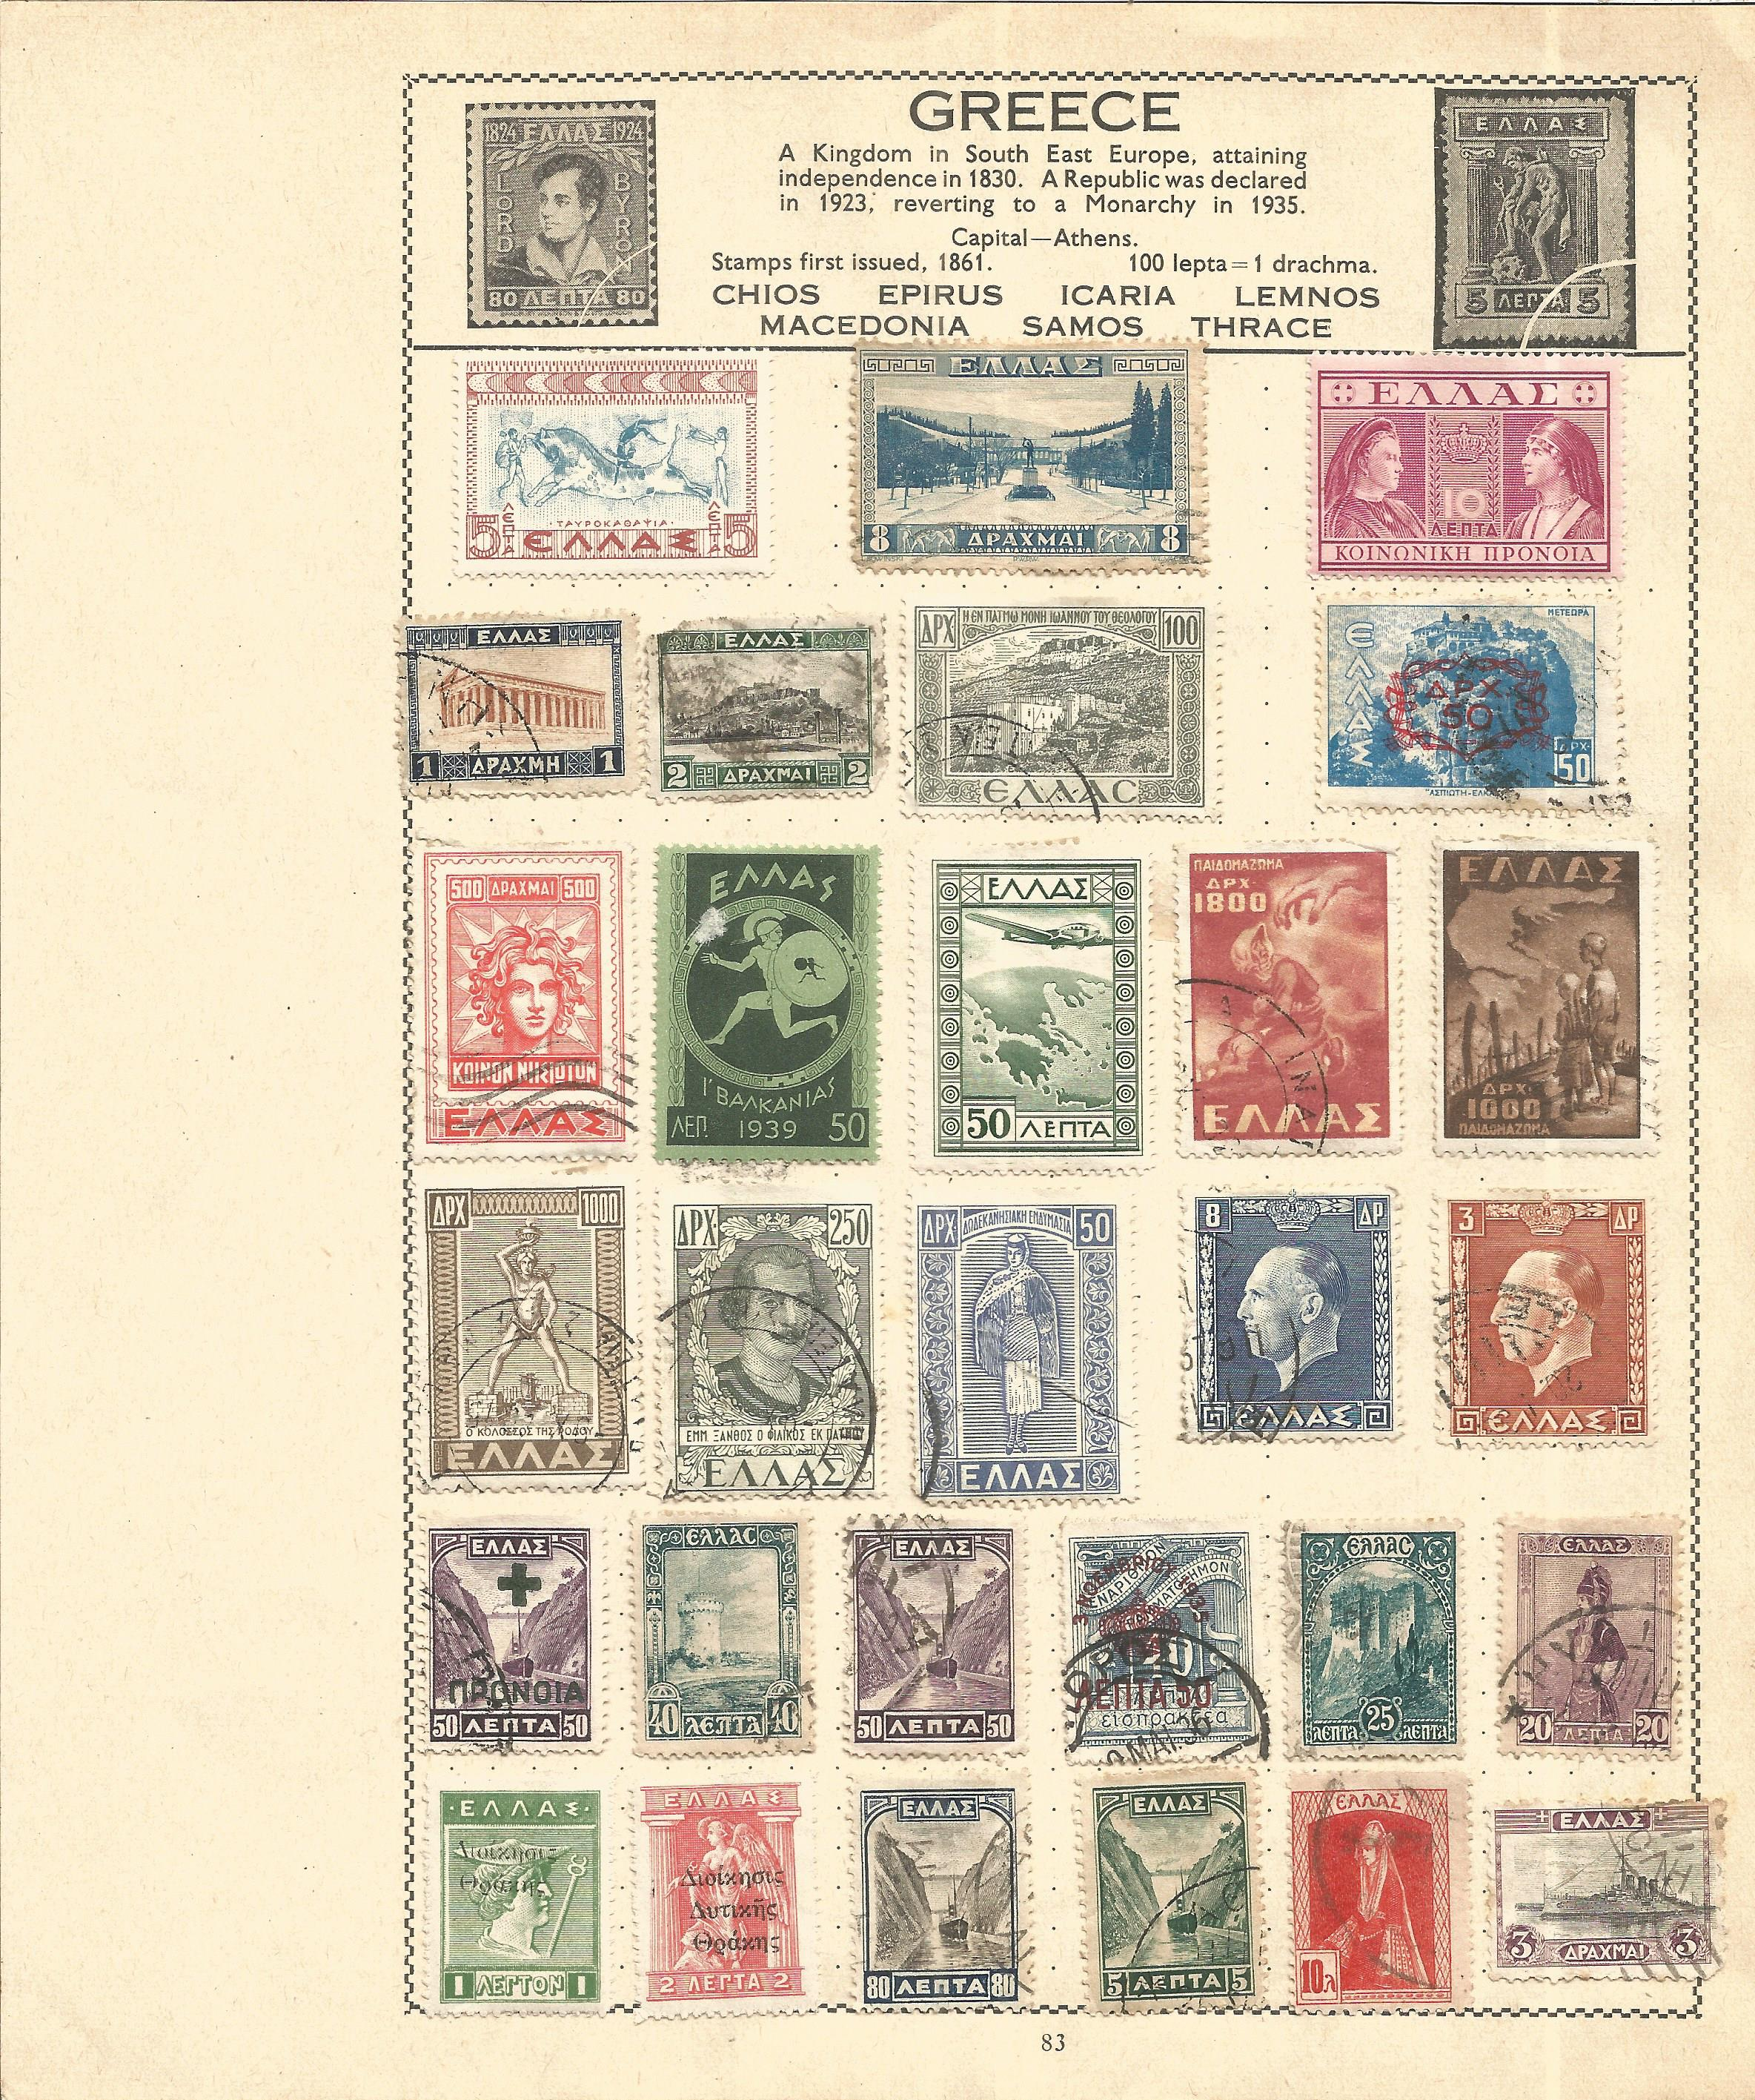 European Stamp collection 7 loose album sleeves countries include Greece and Belgium. Good